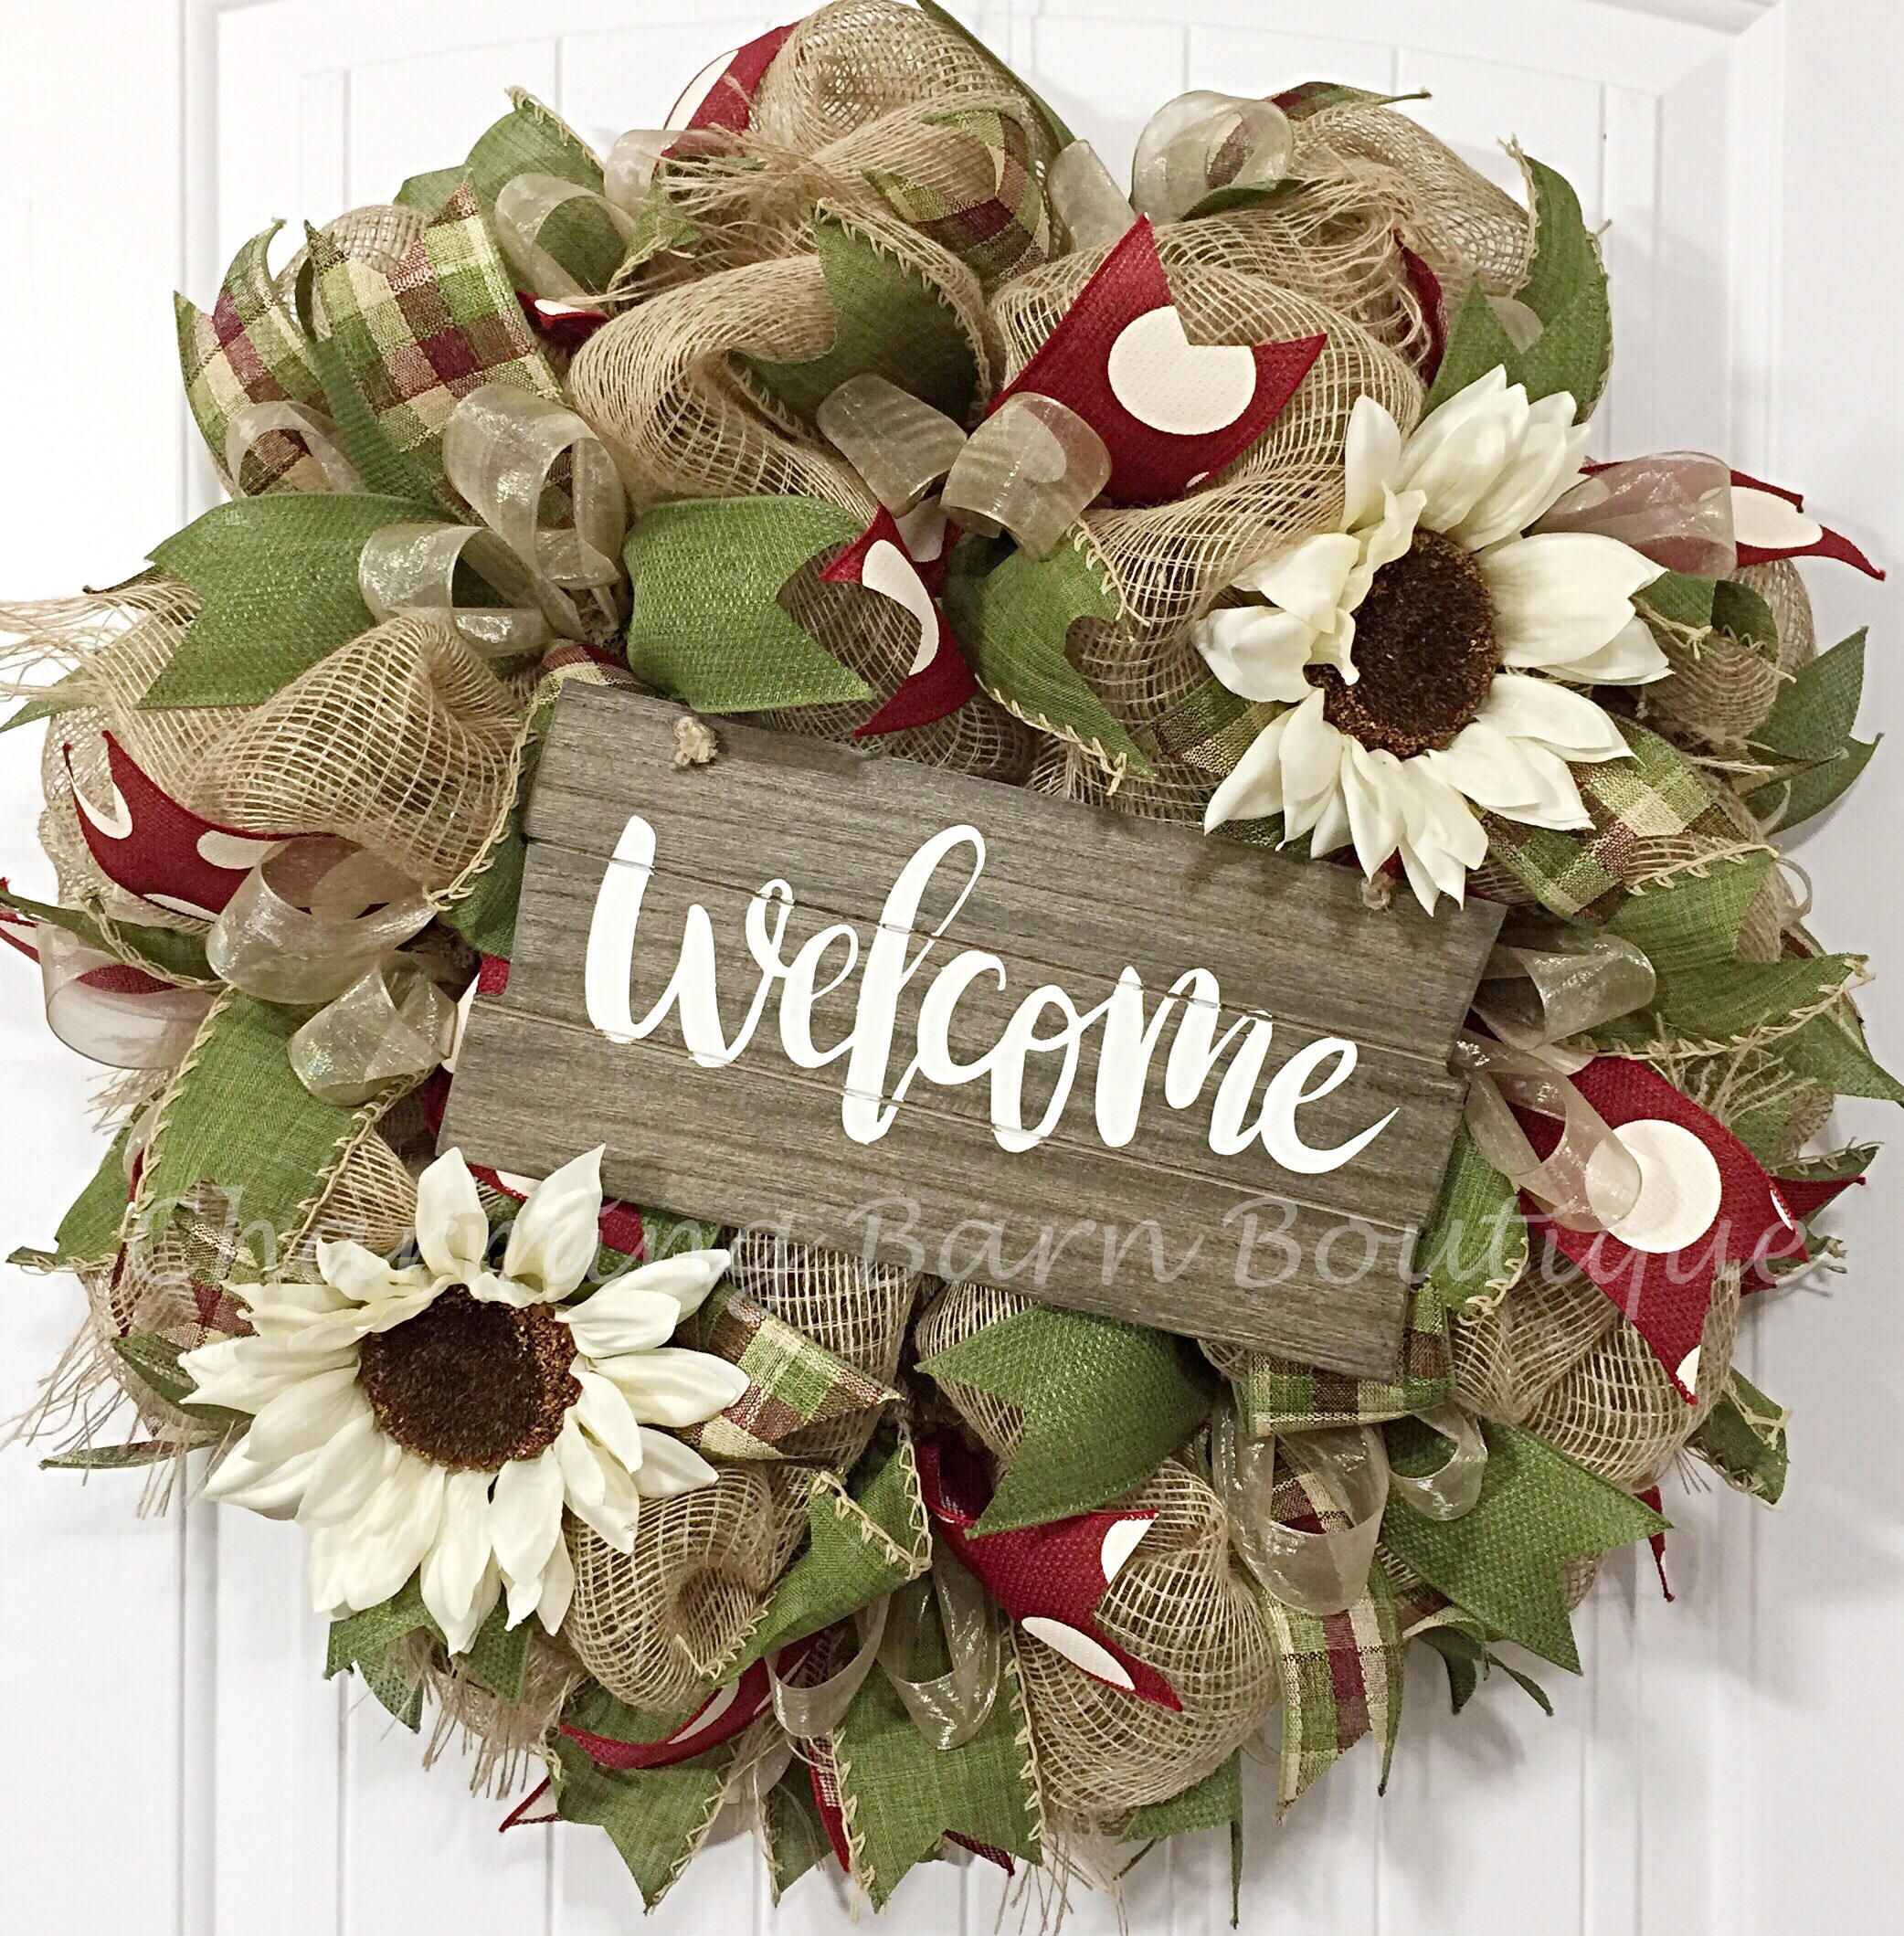 Welcome wreath year round wreath fall wreath sunflower wreath shop for front door wreaths on etsy the place to express your creativity through the buying and selling of handmade and vintage goods rubansaba